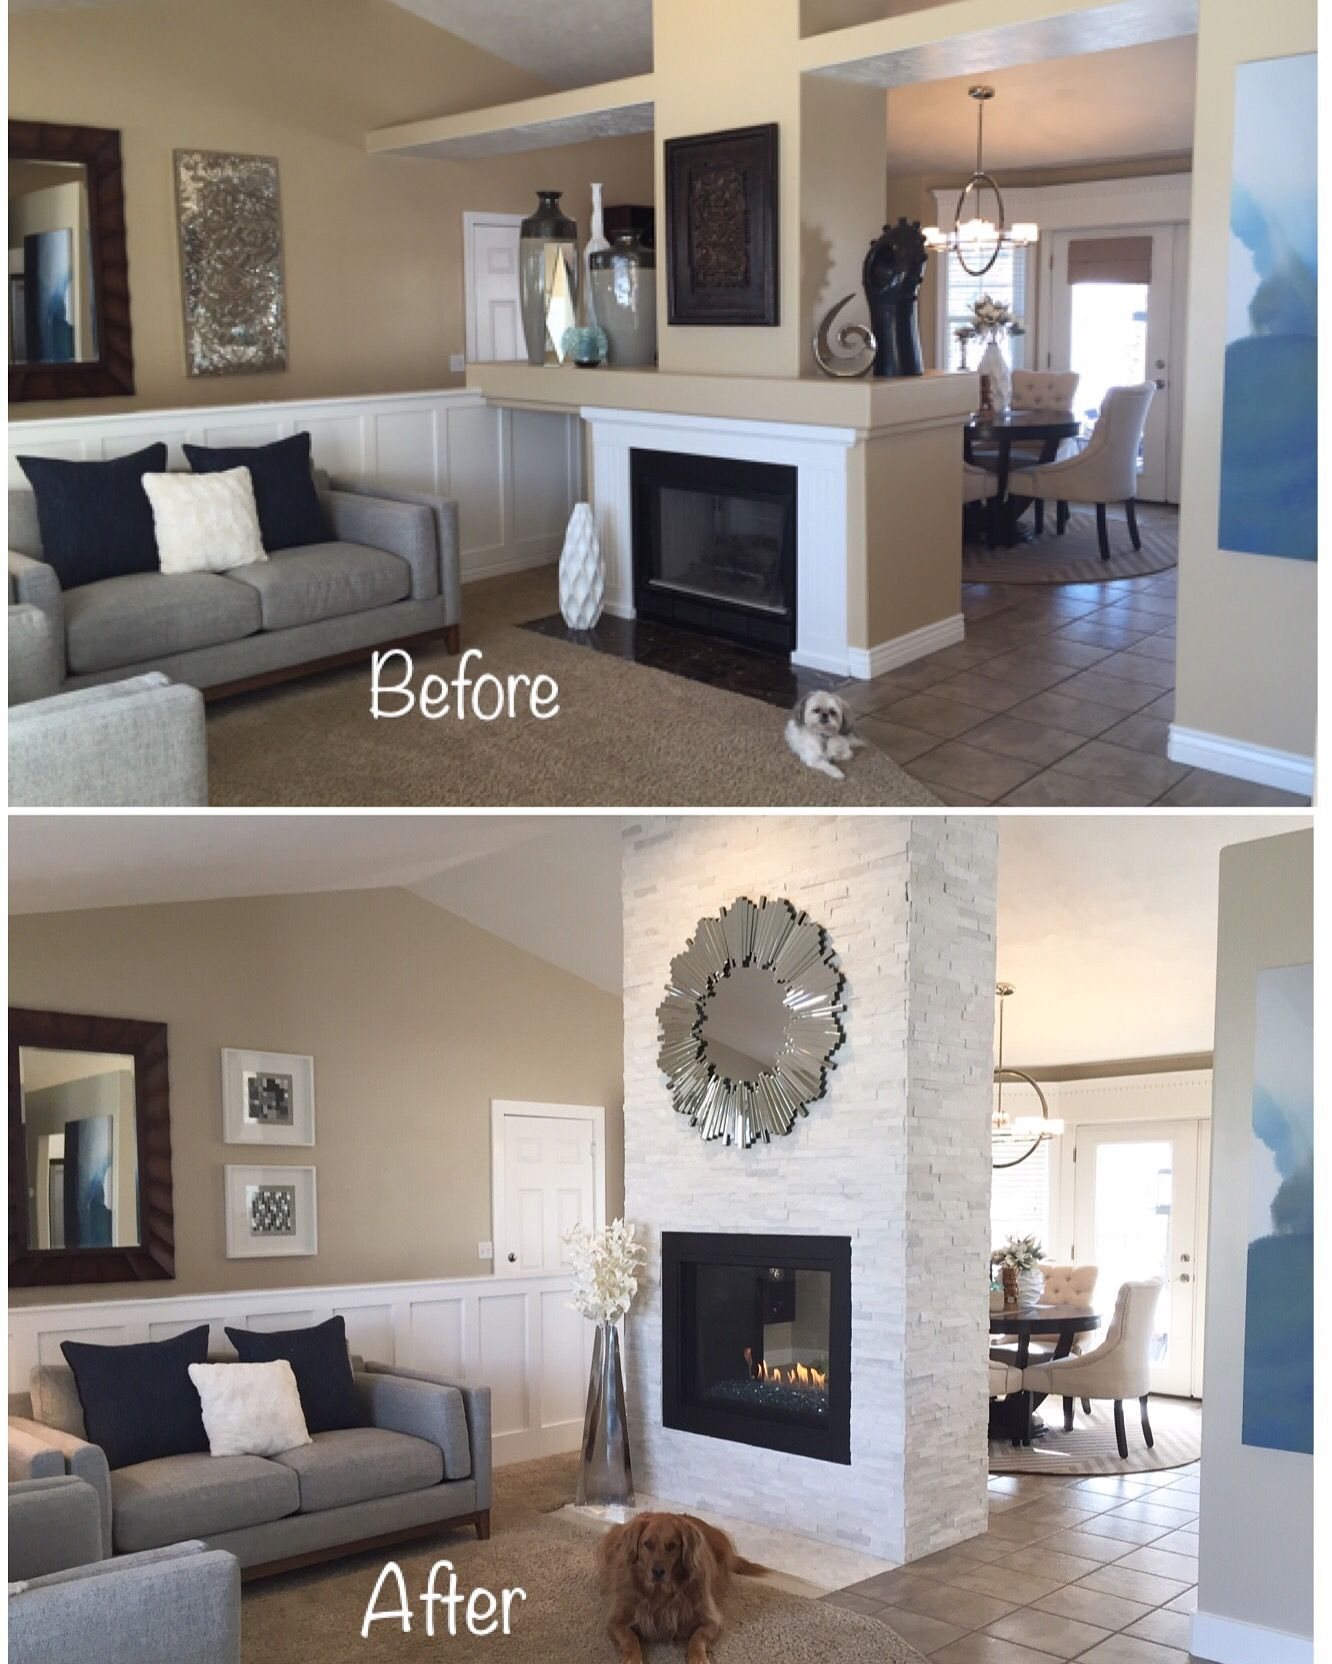 Kitchen Renovation Trends 2015 27 Ideas To Inspire: 15 See Through Fireplace Ideas Images